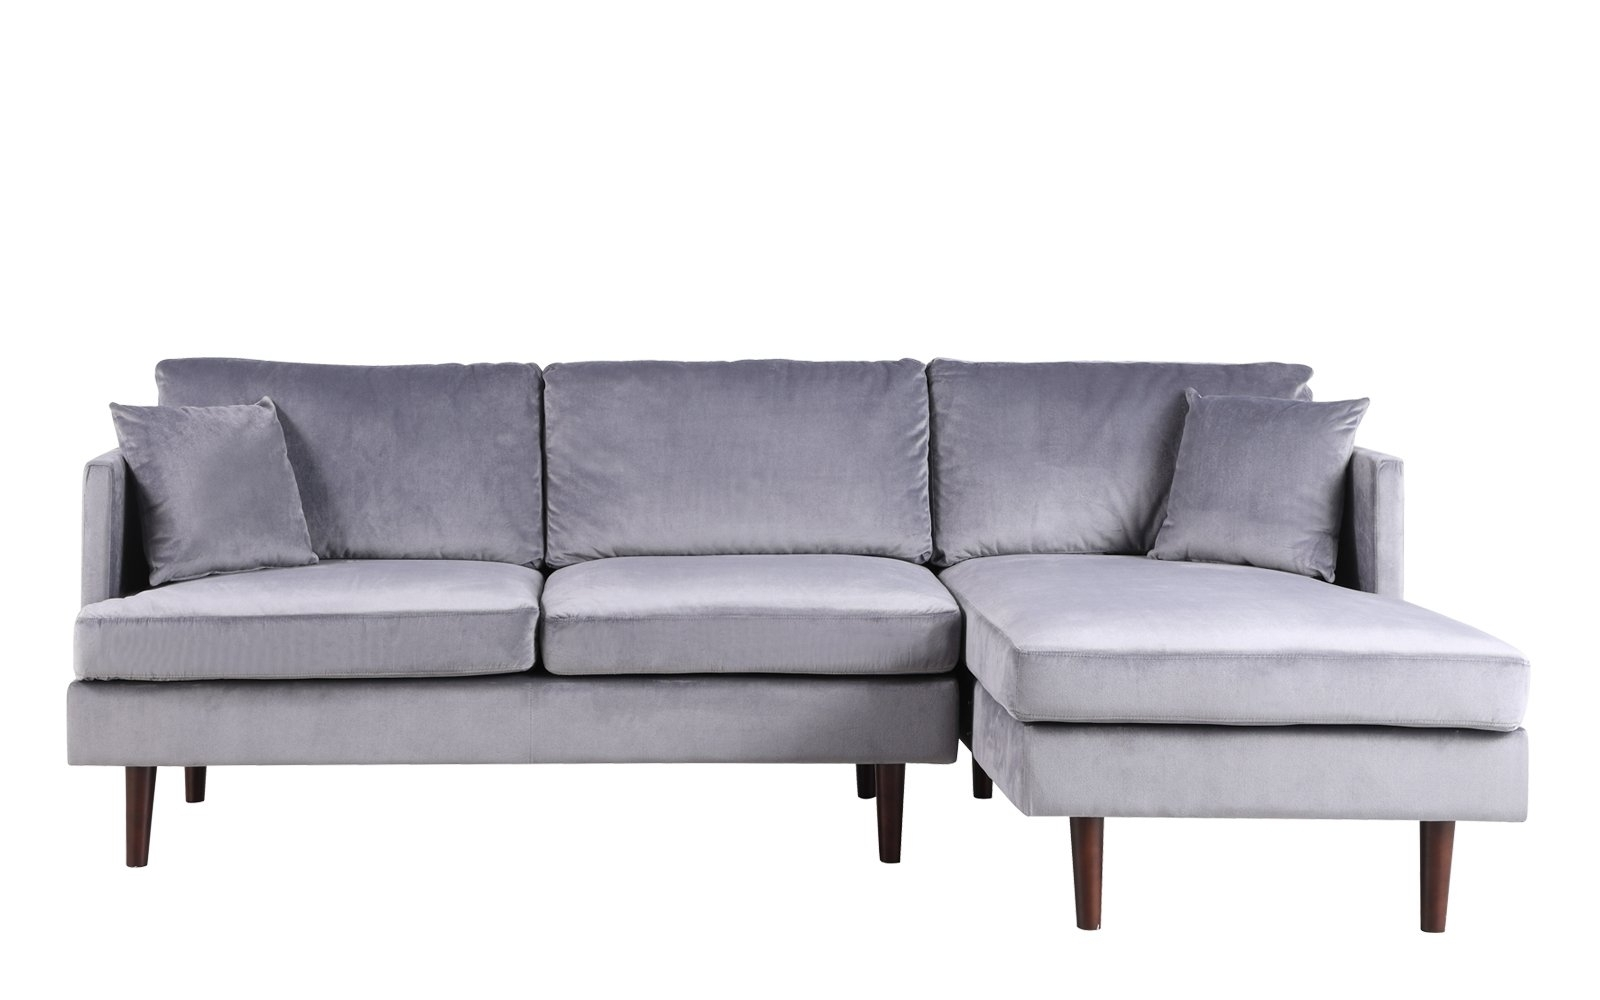 Jovanni Modern Art Deco Jewel Tone Microfiber Sectional Sofa | Sala For Declan 3 Piece Power Reclining Sectionals With Right Facing Console Loveseat (Image 11 of 25)